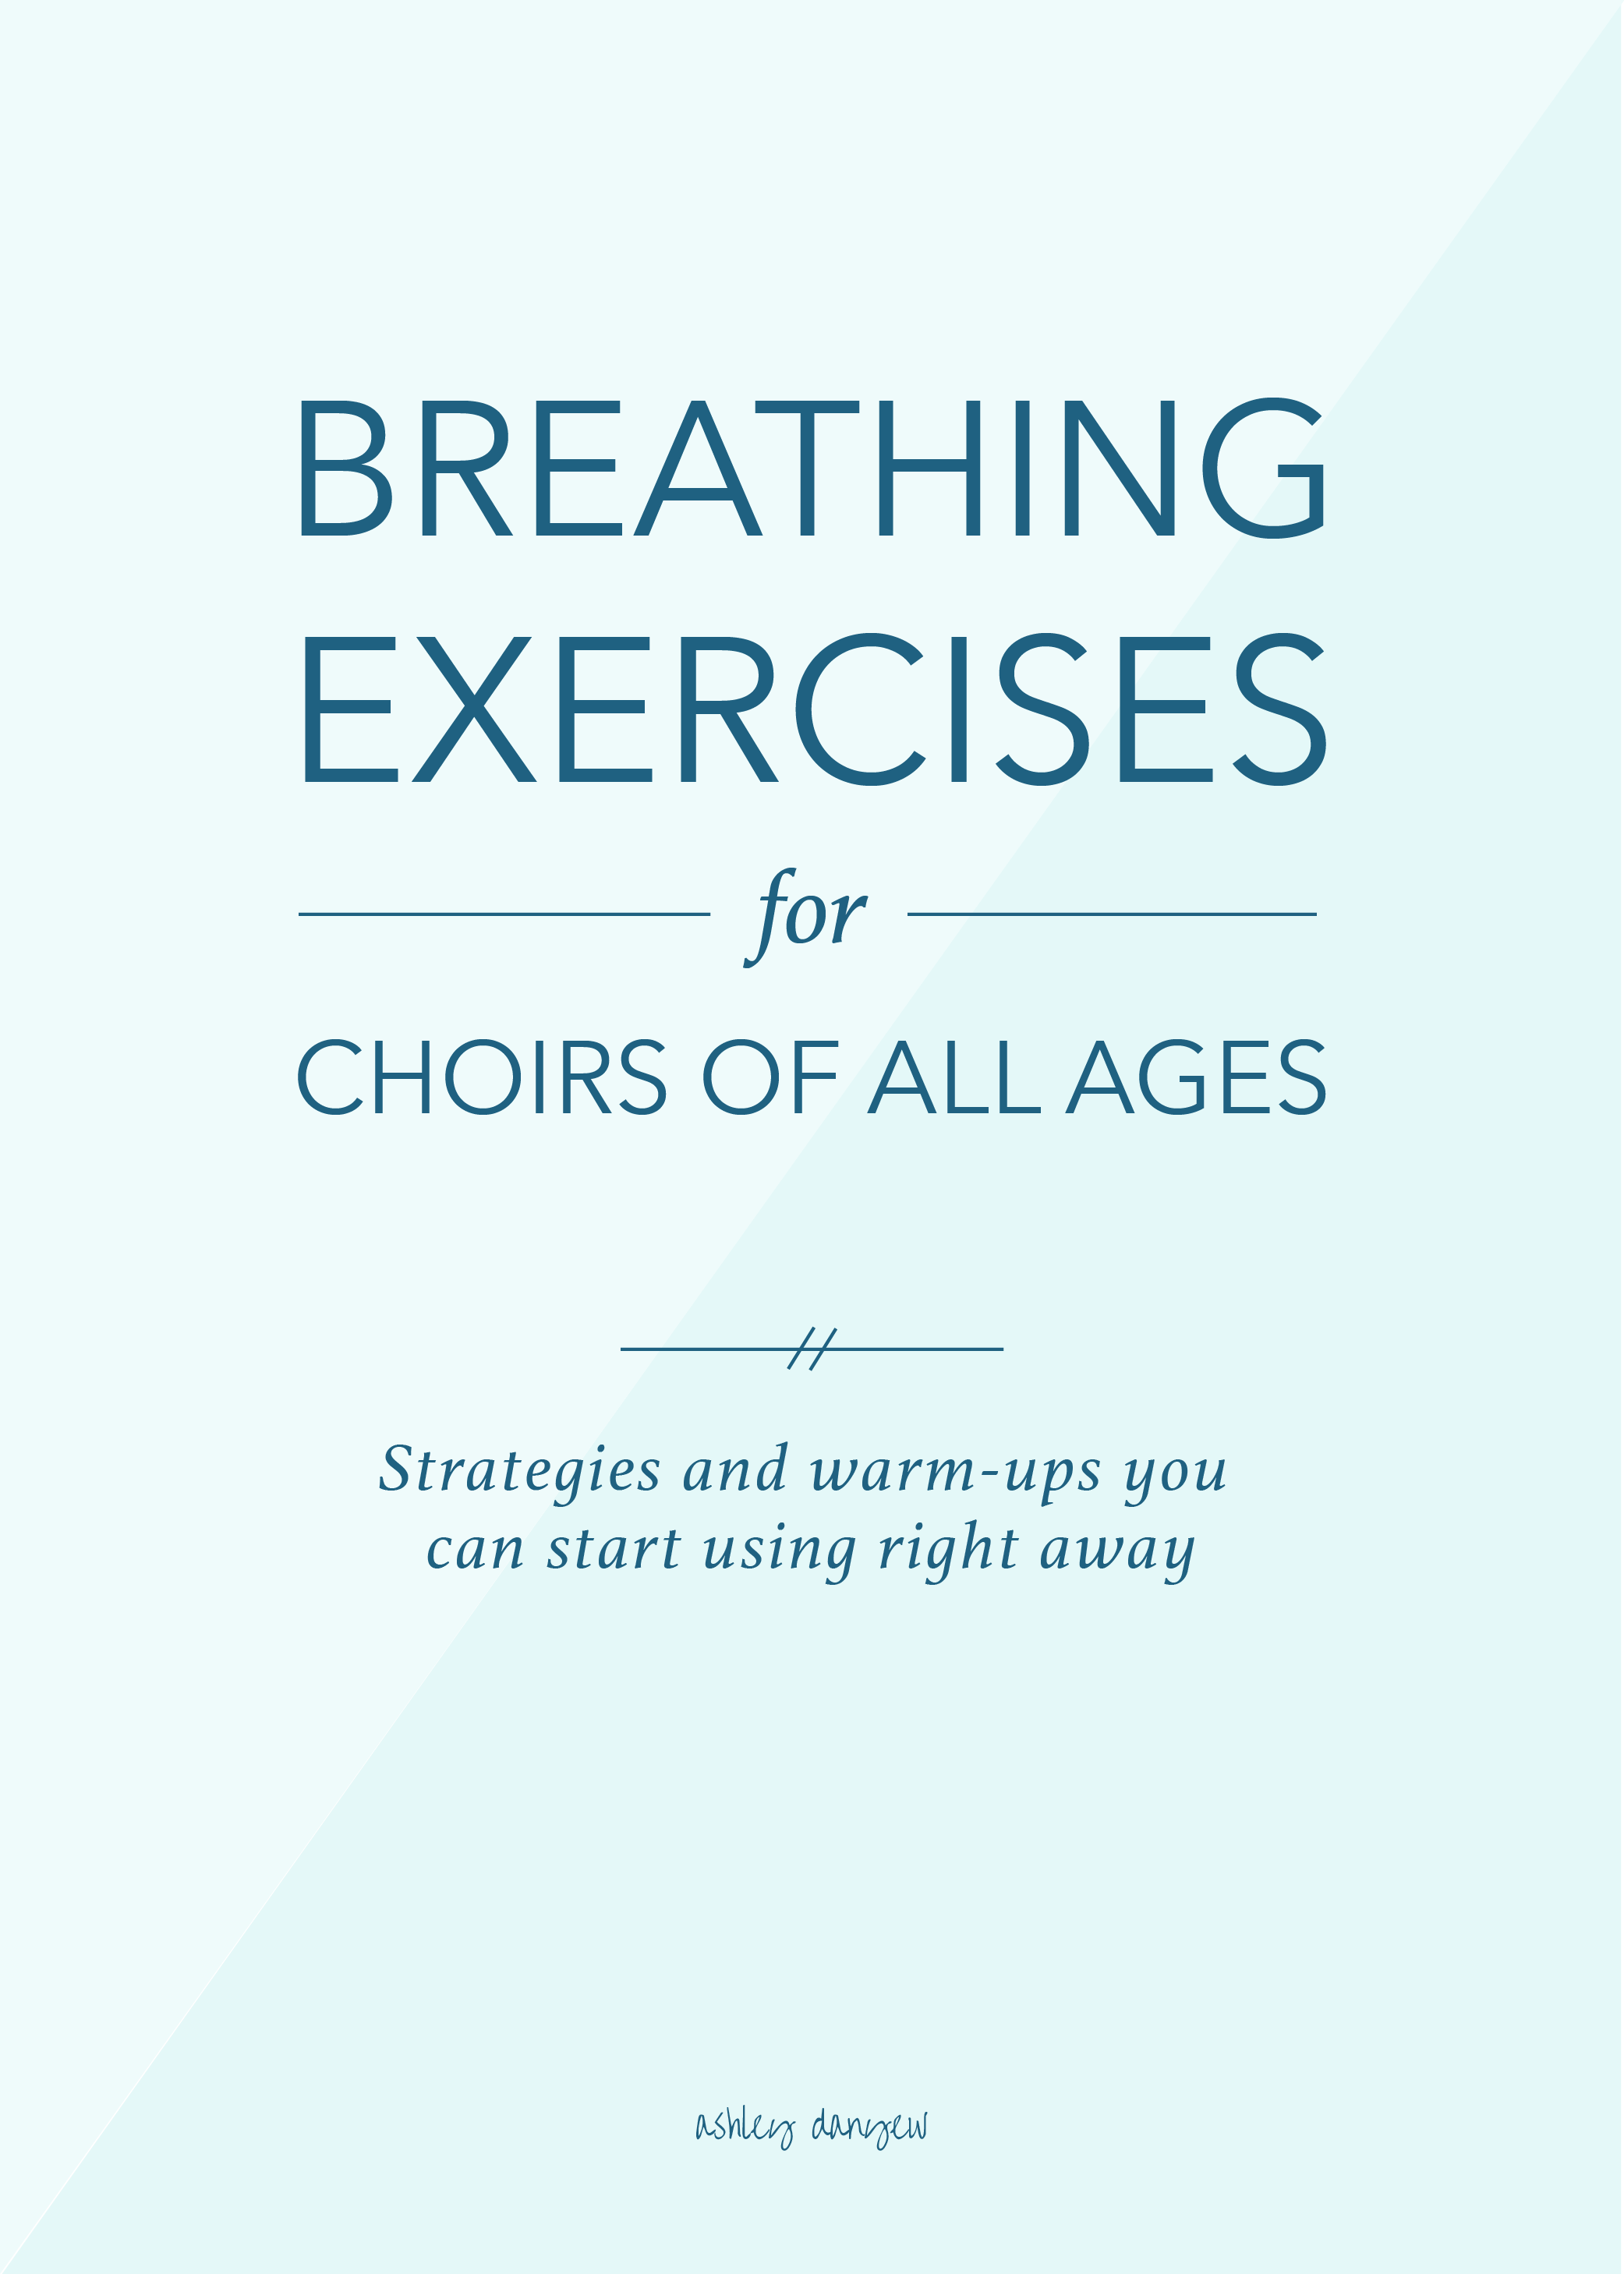 Copy of Breathing Exercises for Choirs of All Ages